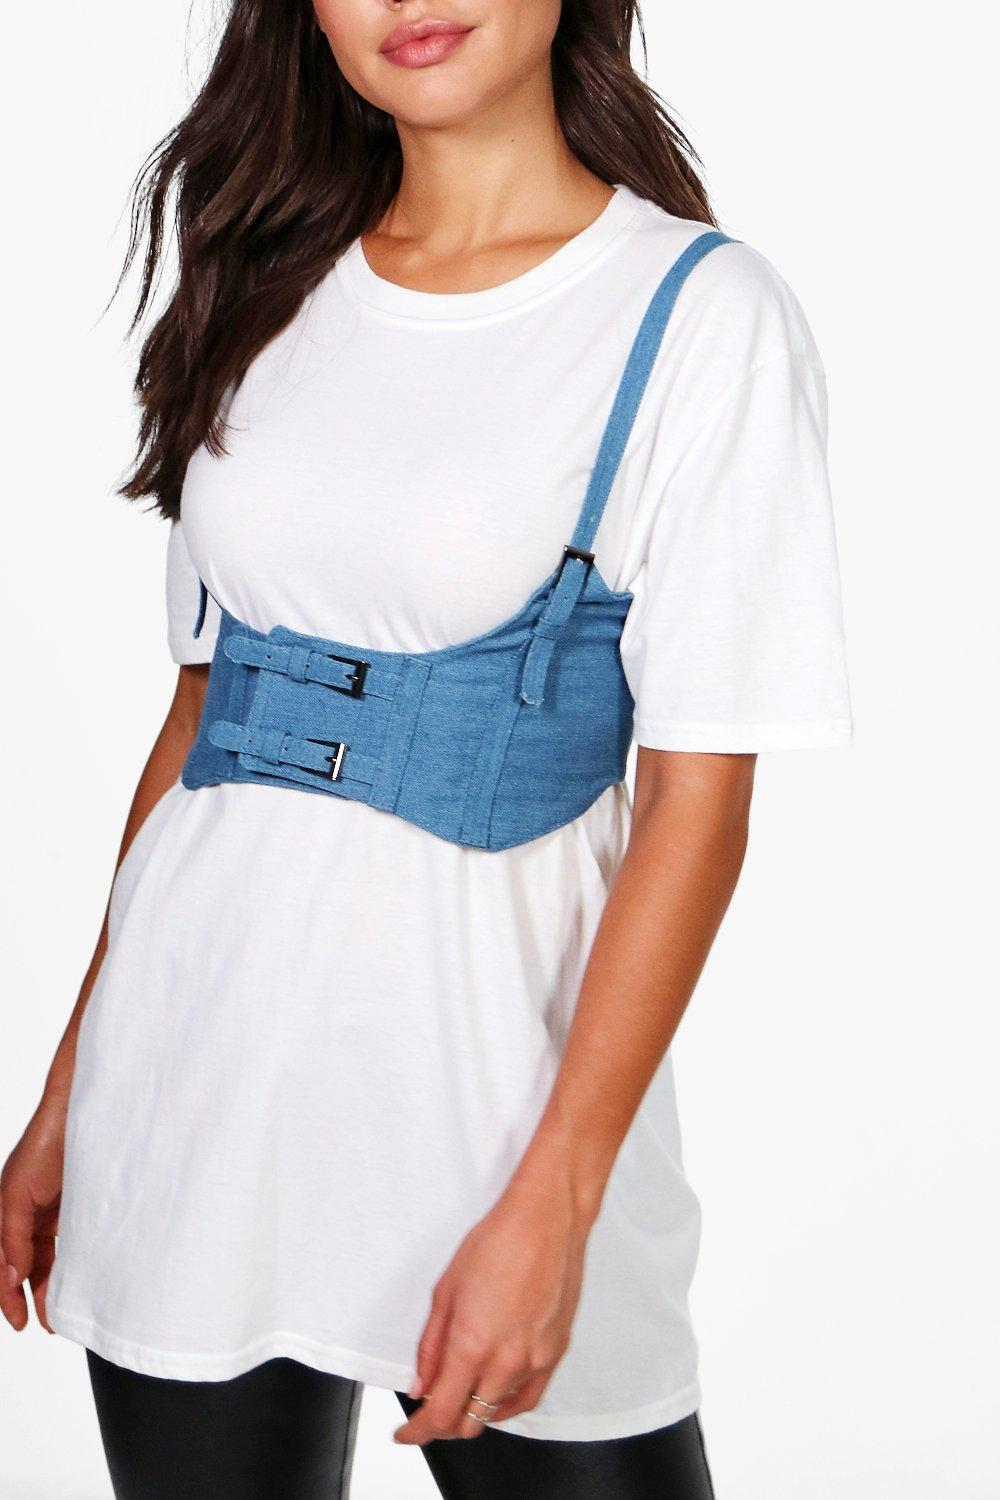 Double Buckle Strappy Corset Belt - denim - Daisy